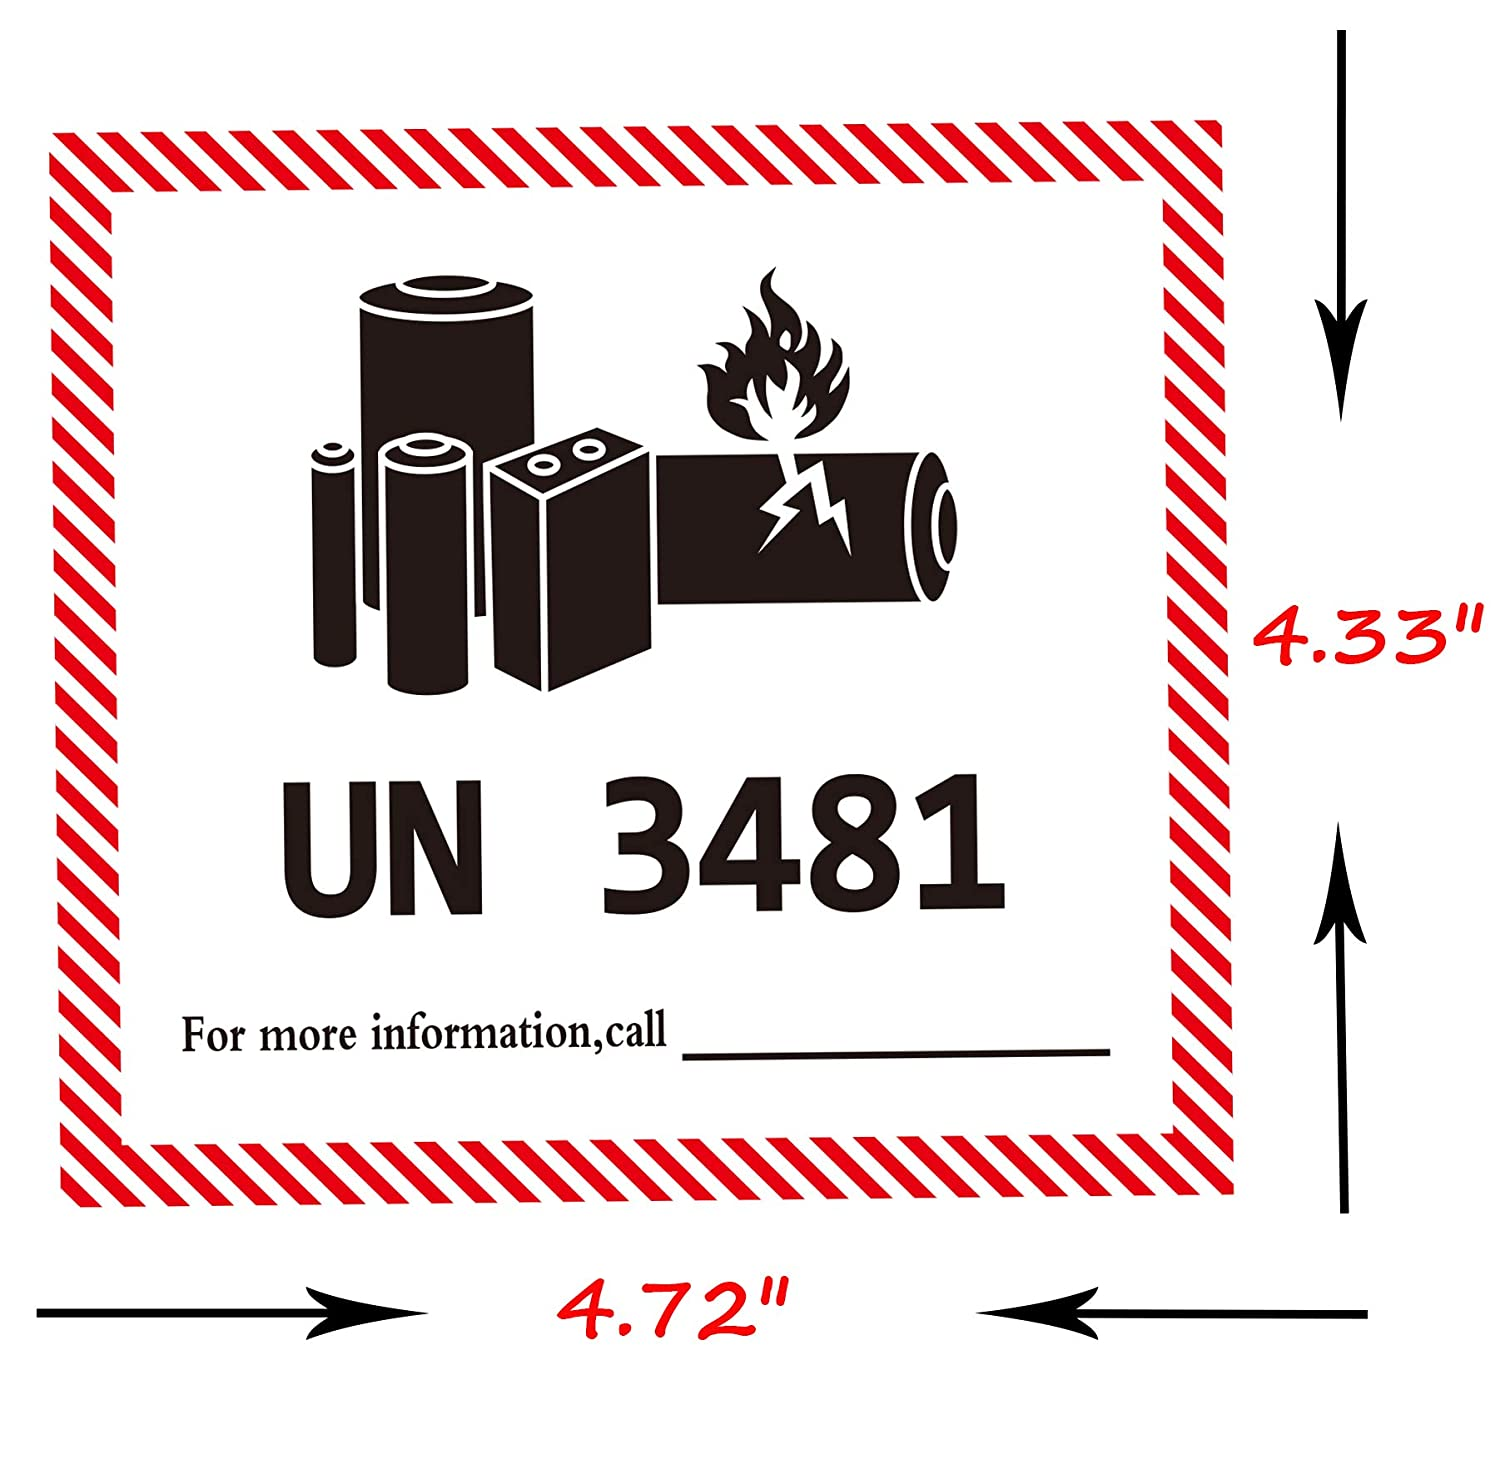 UN 3481 Lithium Battery Labels 4.72 x 4.33 inch Lithium Ion Battery Transport Caution Warning Labels/ 200 Adhesive Stickers/